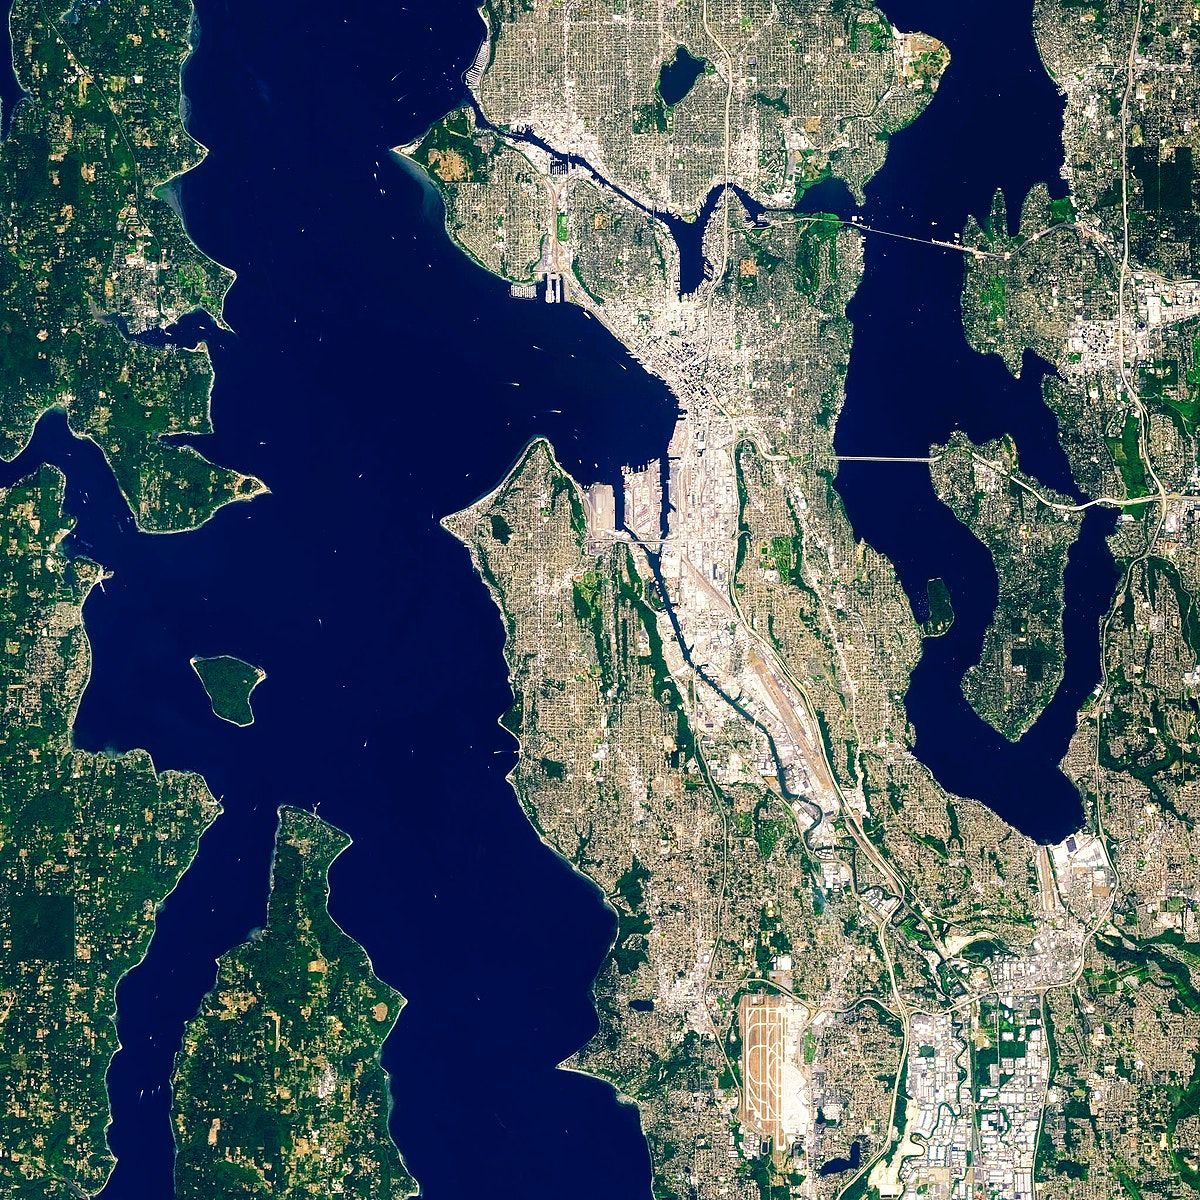 Images of the Earth's land surface and surrounding coastal regions. Original from NASA. Digitally enhanced by rawpixel.